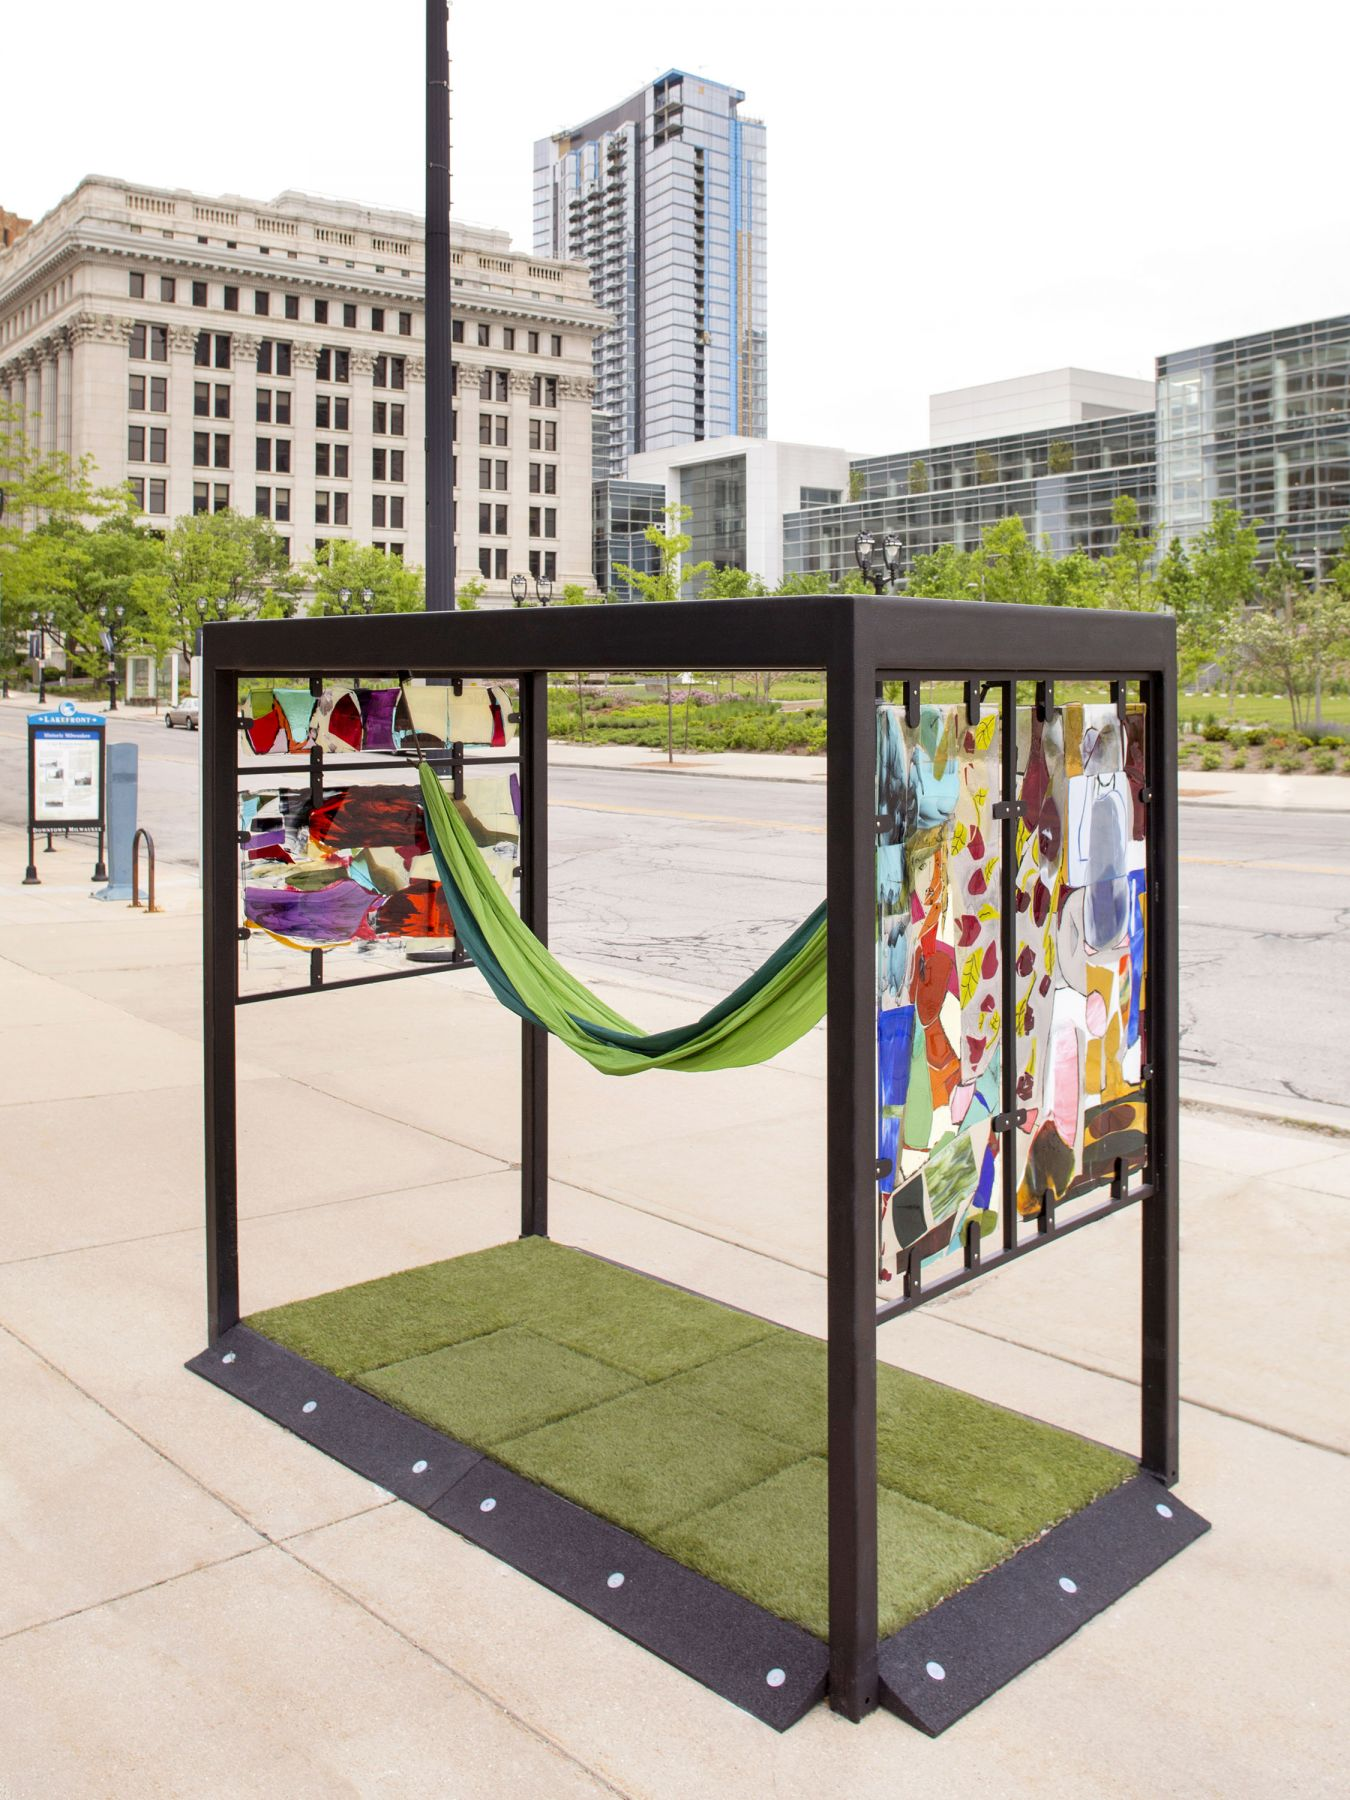 a work of outdoor public art by jessica jackson hutchins